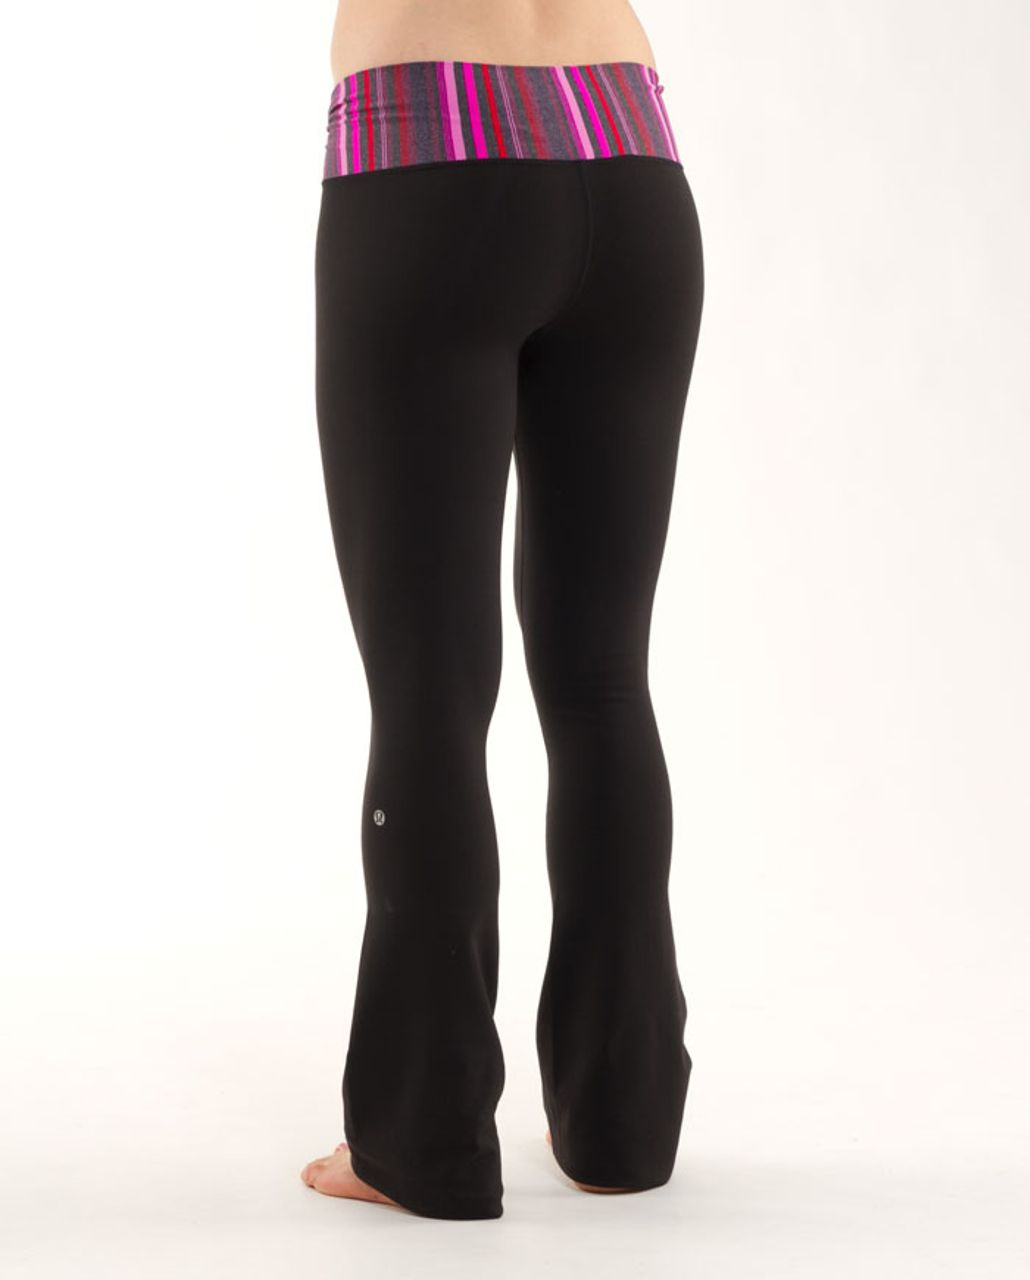 Lululemon Recognition Pant - Black /  Elevation Space Dye